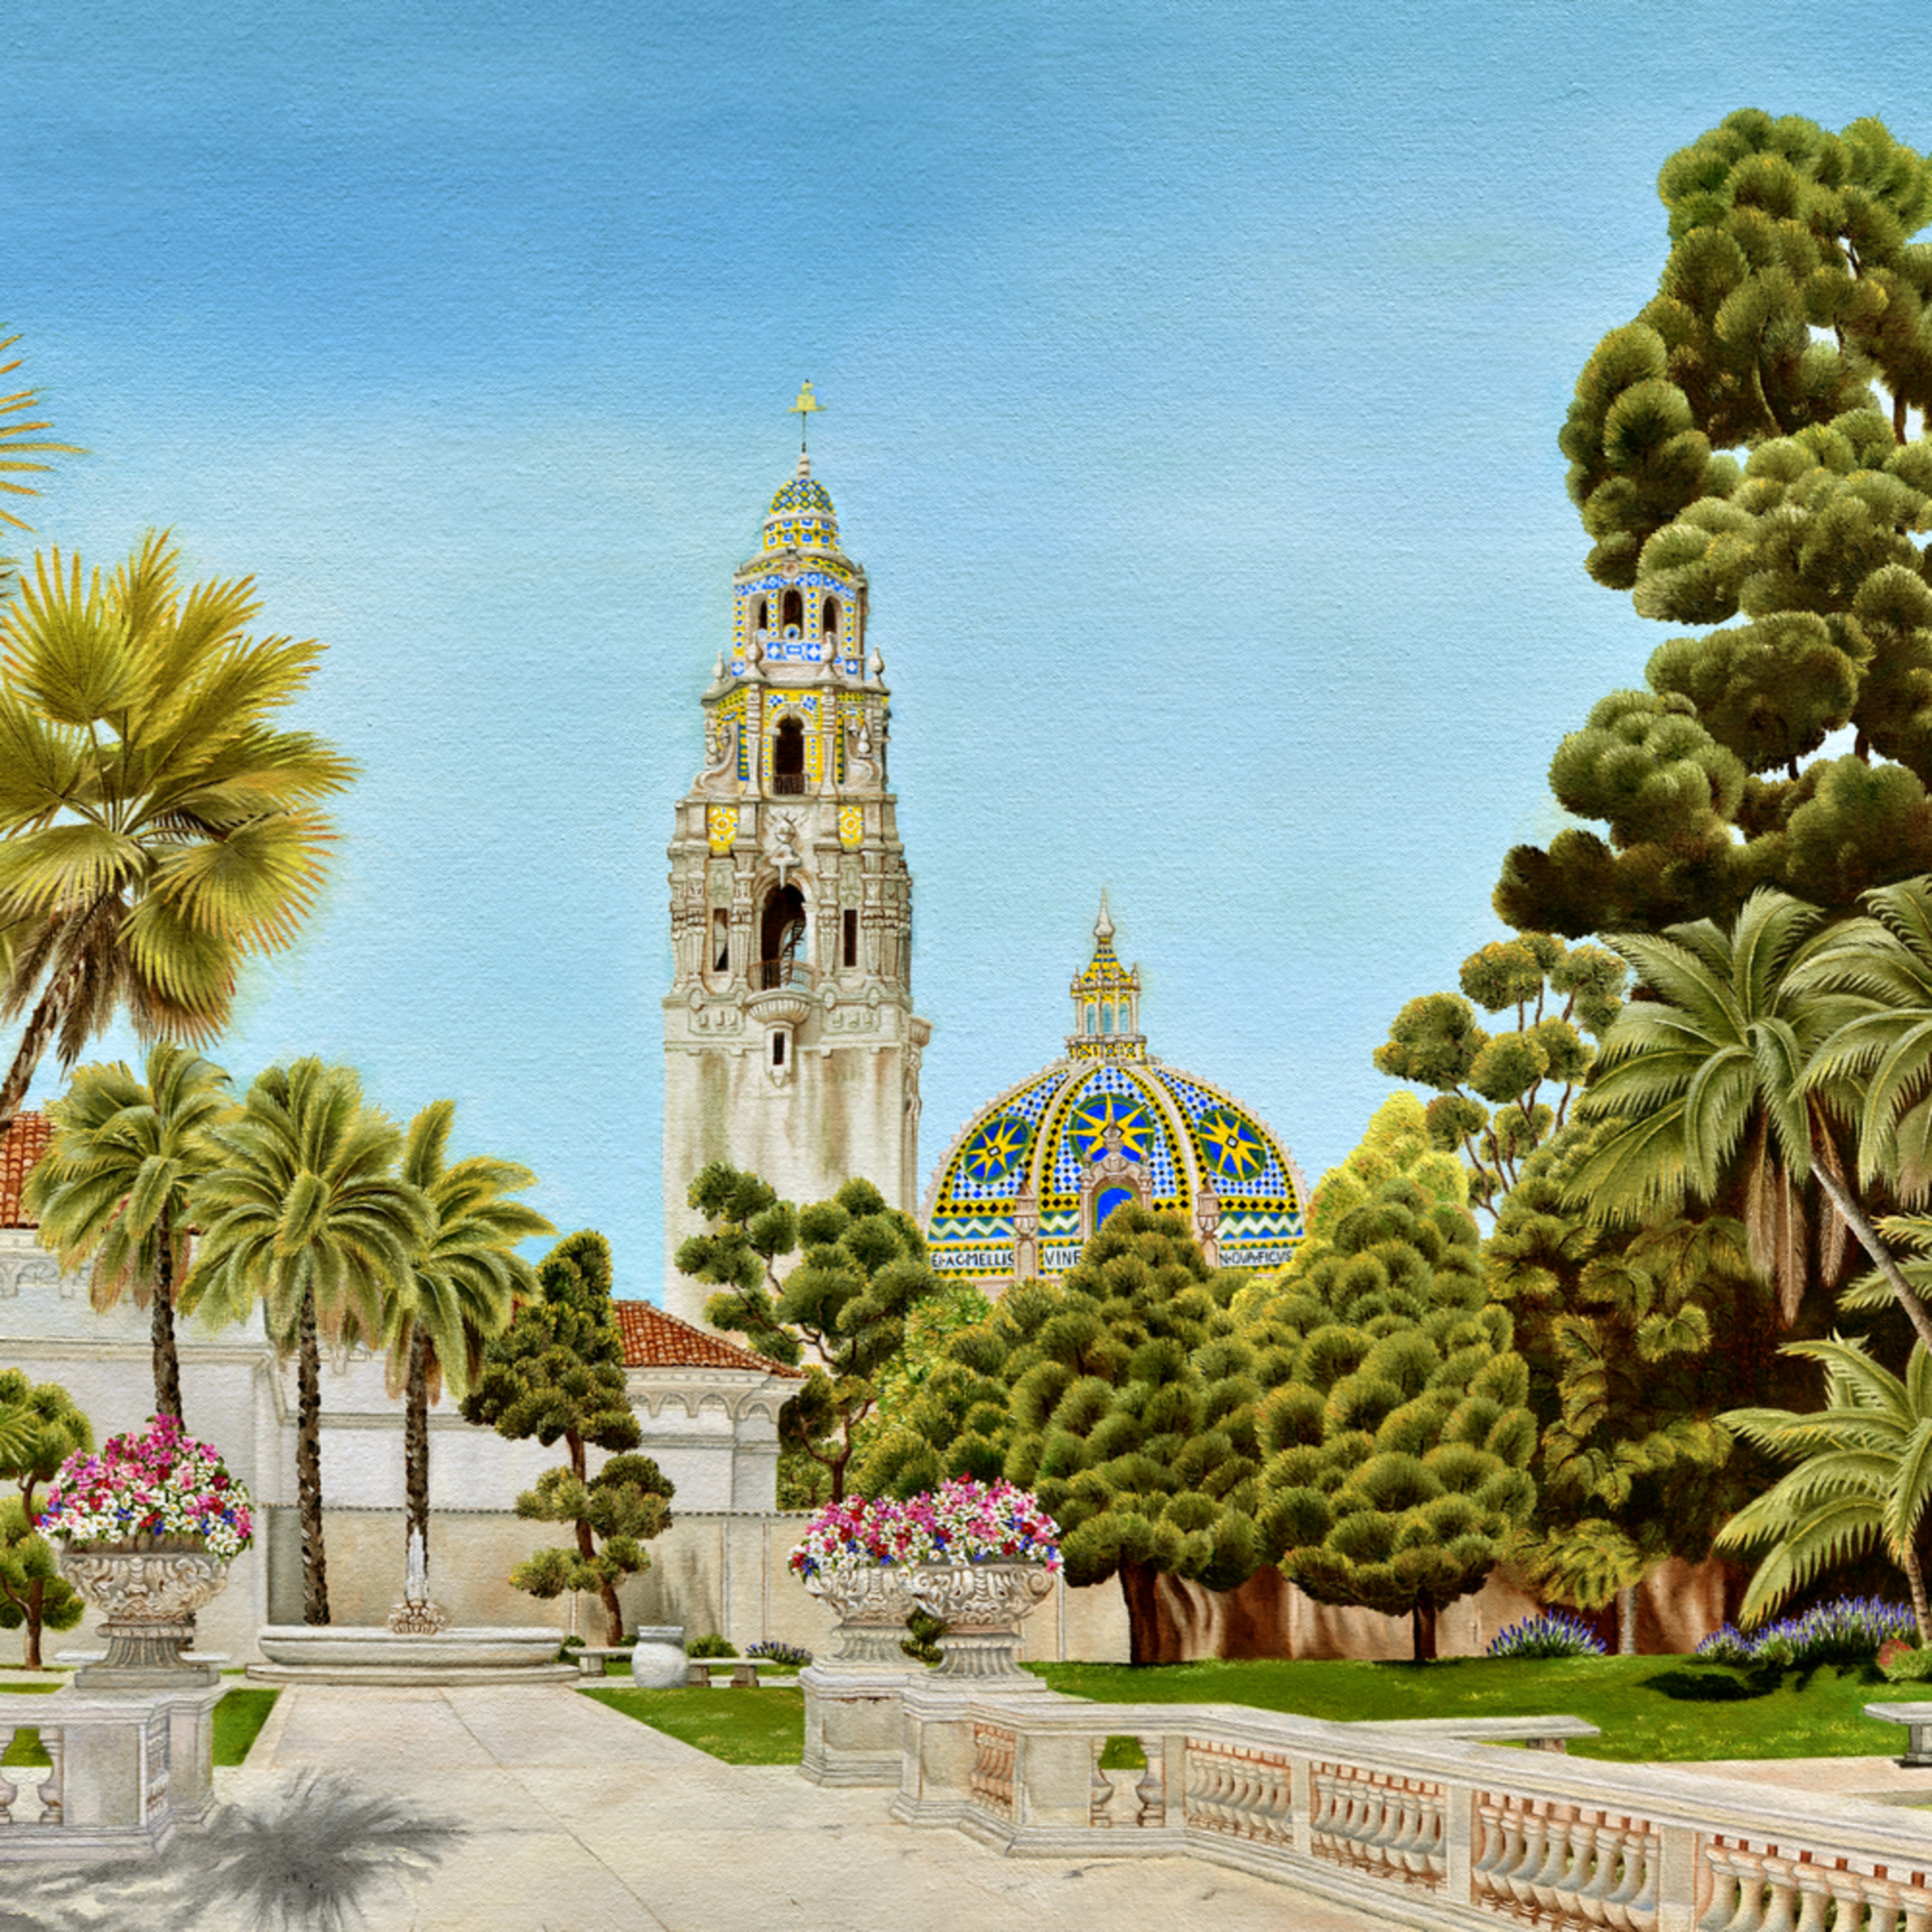 Balboapark centenialtribute the calif tower and the bell tower dome w sig  a162lt